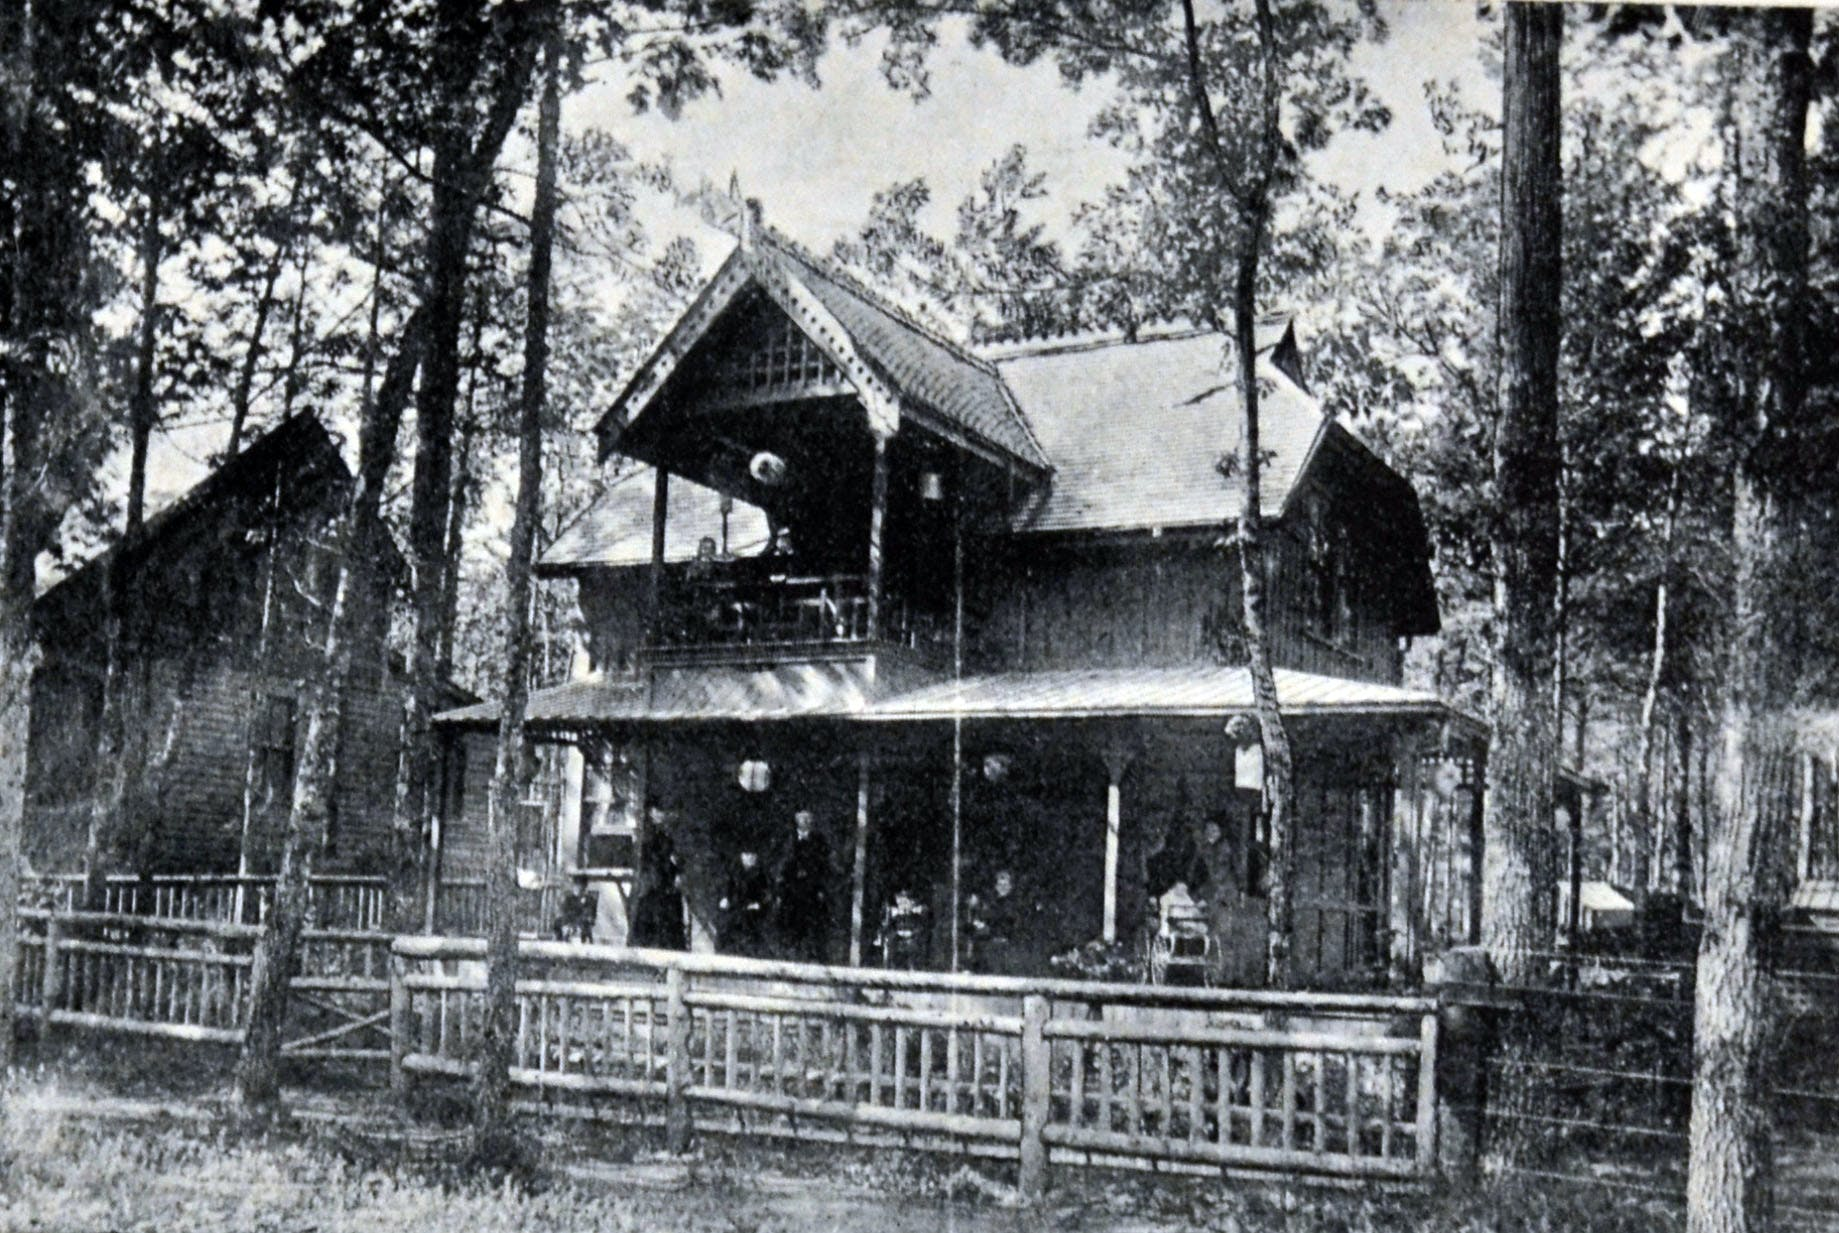 Earlescourt Cottage, Earls Residence, circa 1900